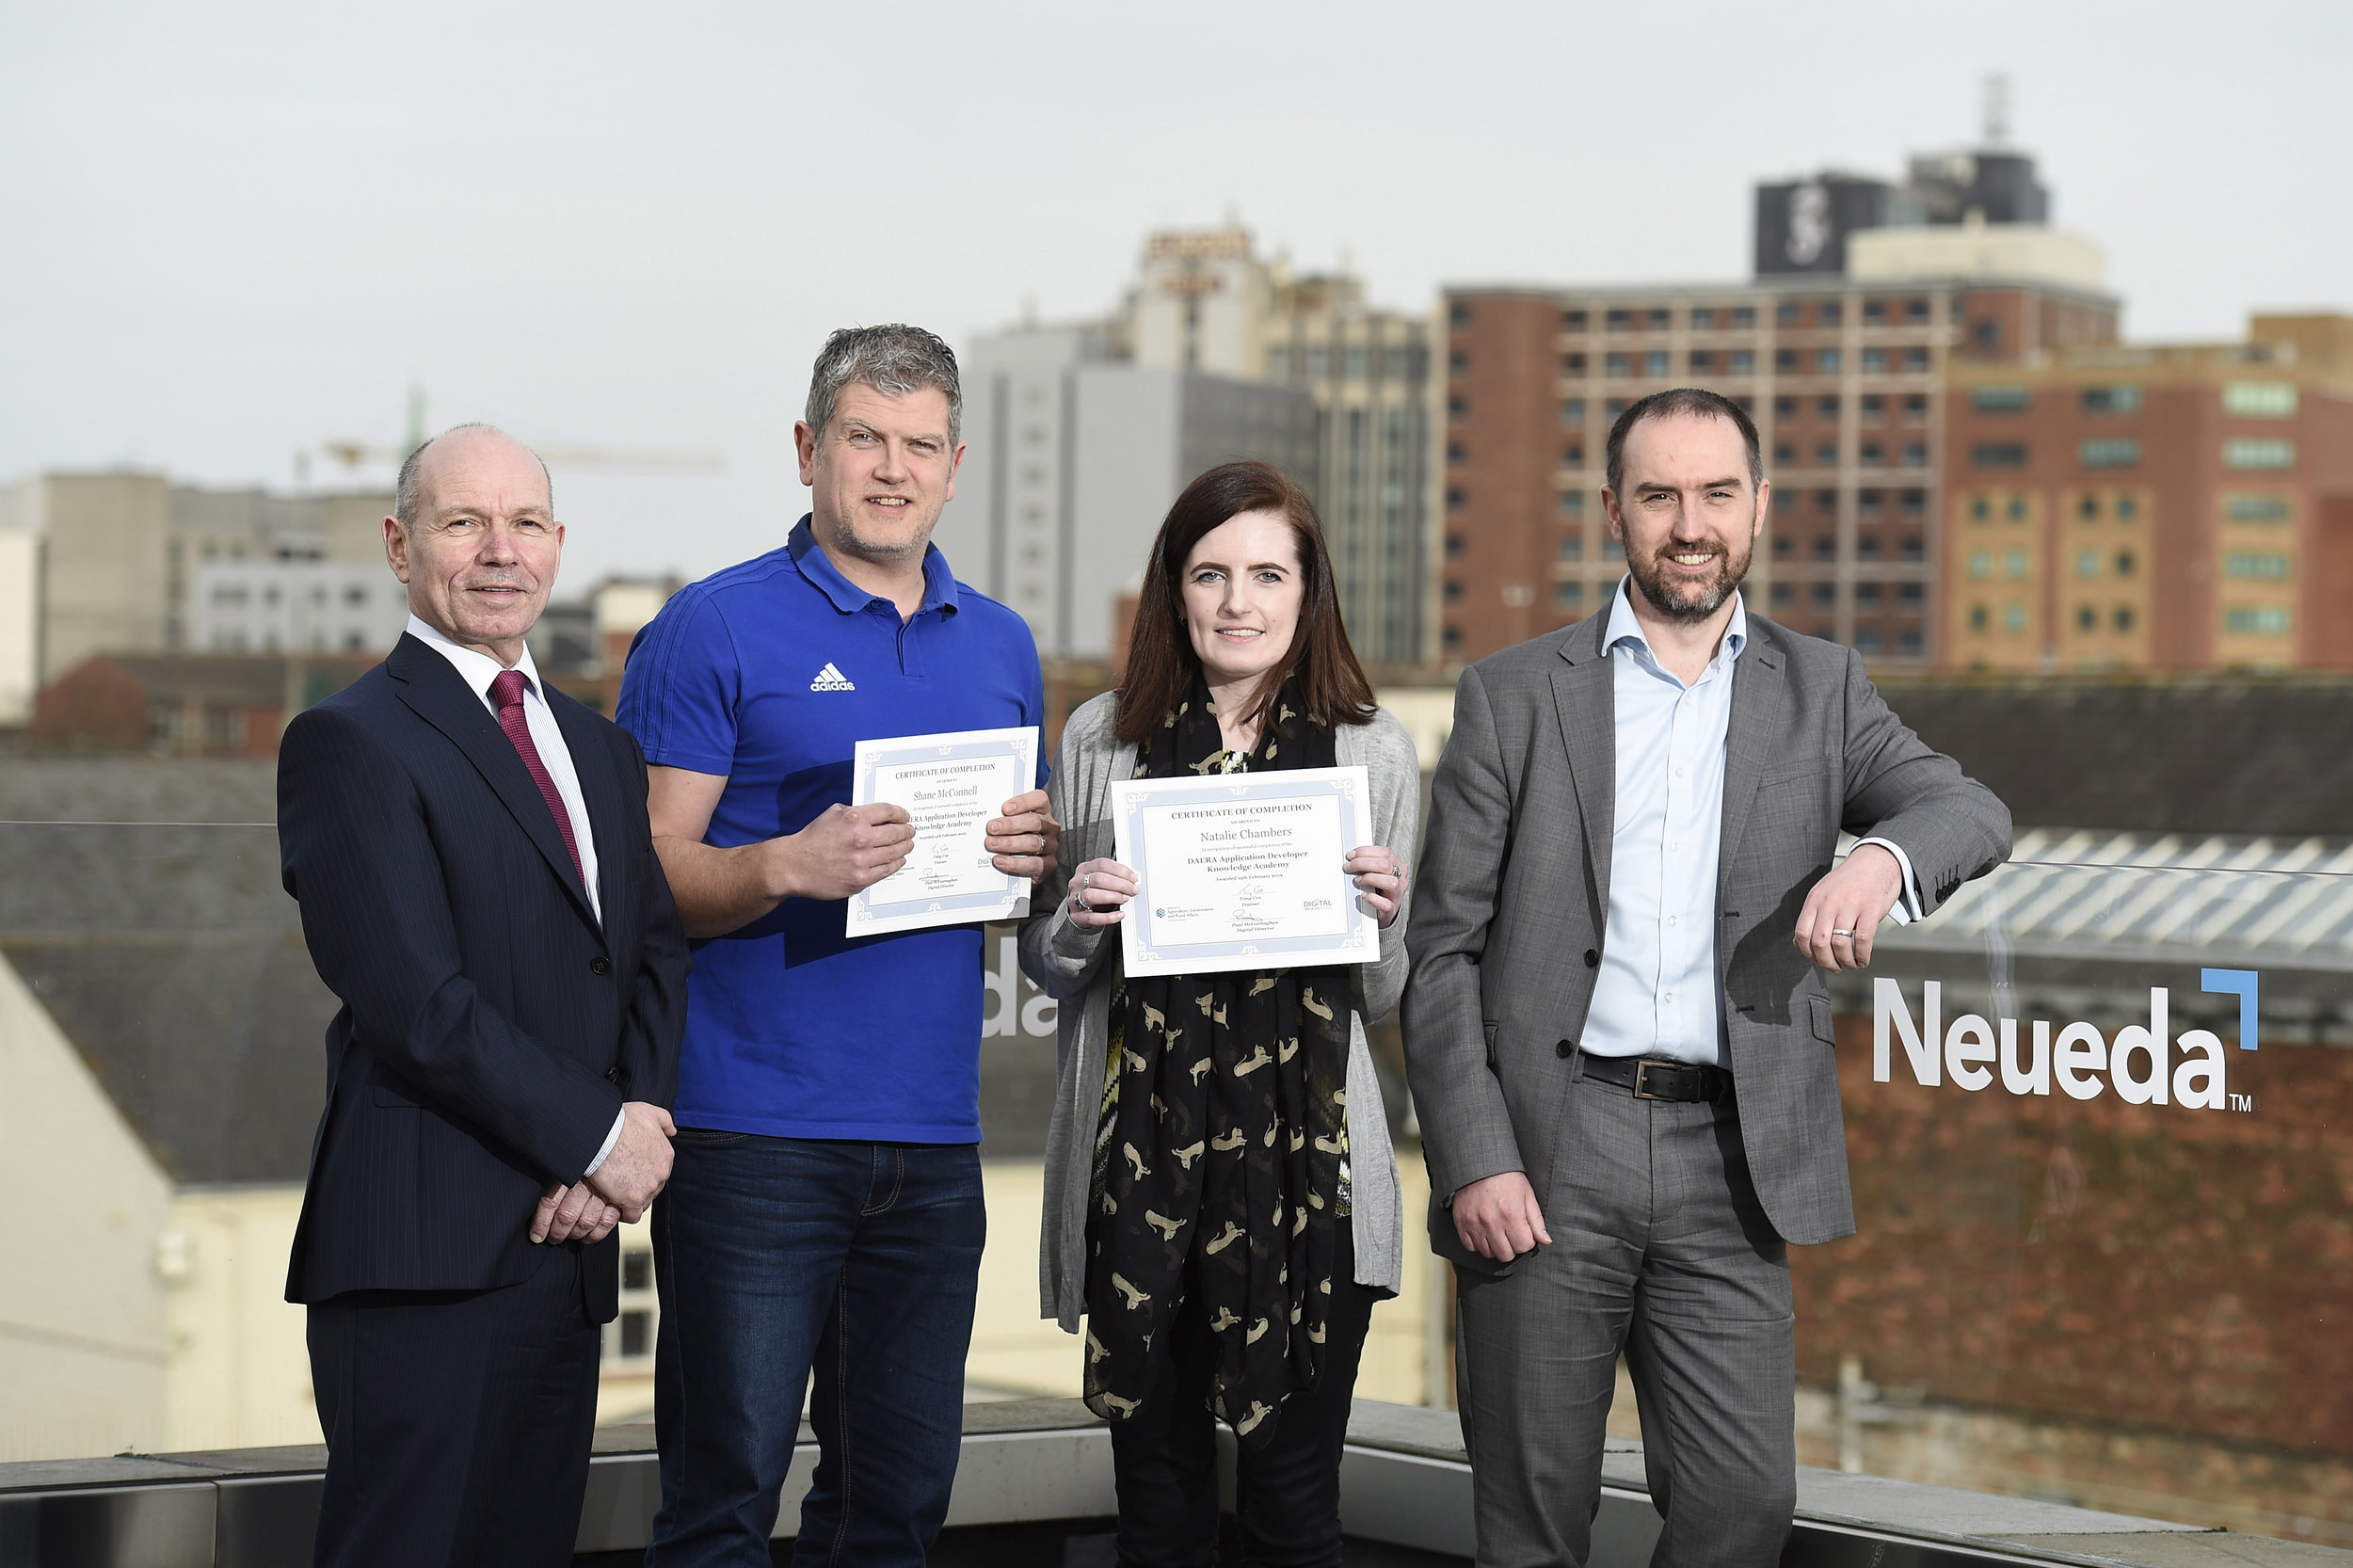 [L-R] Paul McGurnaghan, Natalie Chambers and Shane McConnell from DAERA are pictured with John McShane, Neueda.